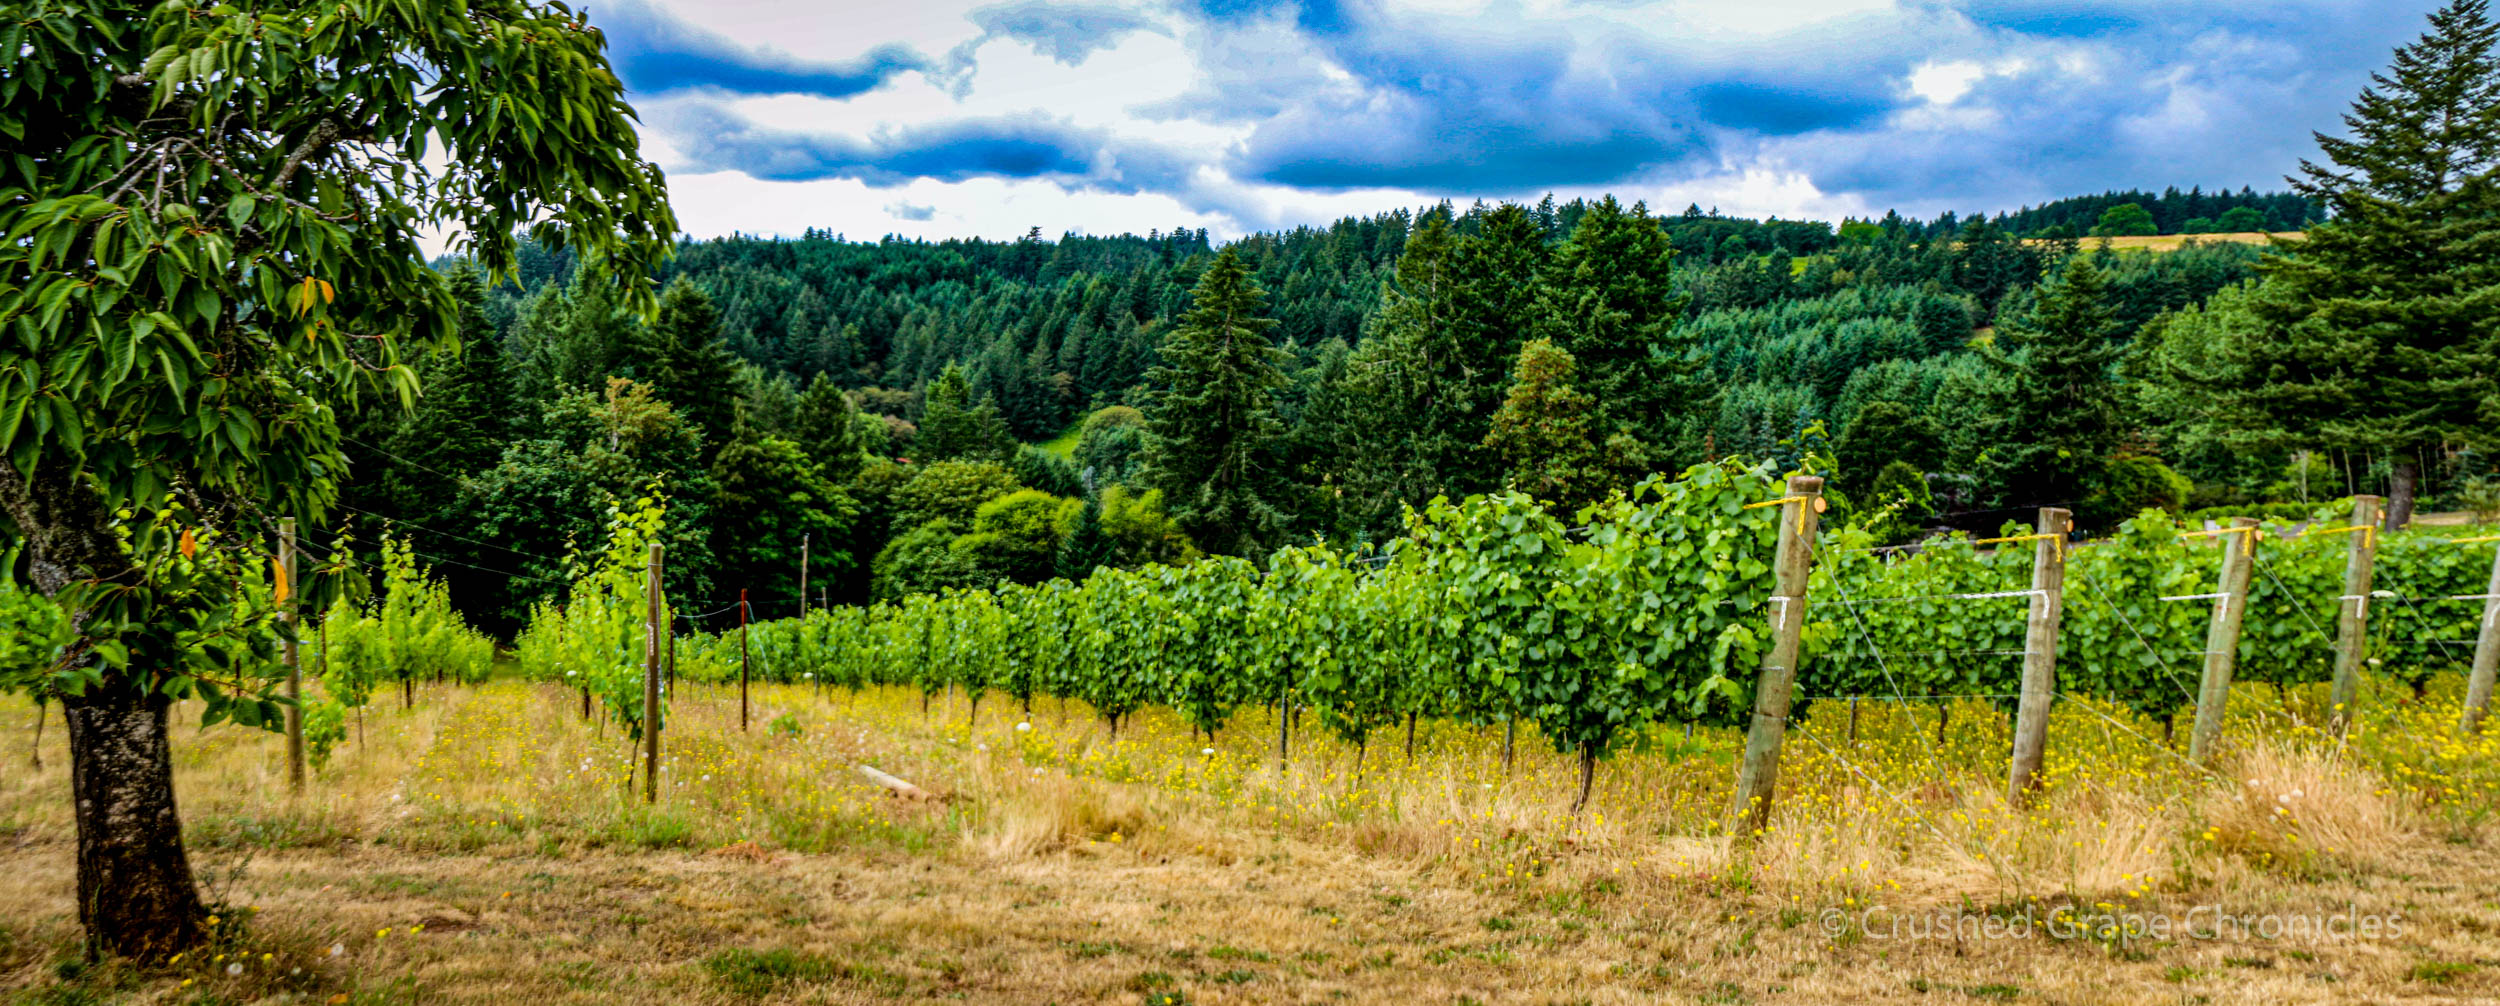 Beckham Vineyard panorama 1